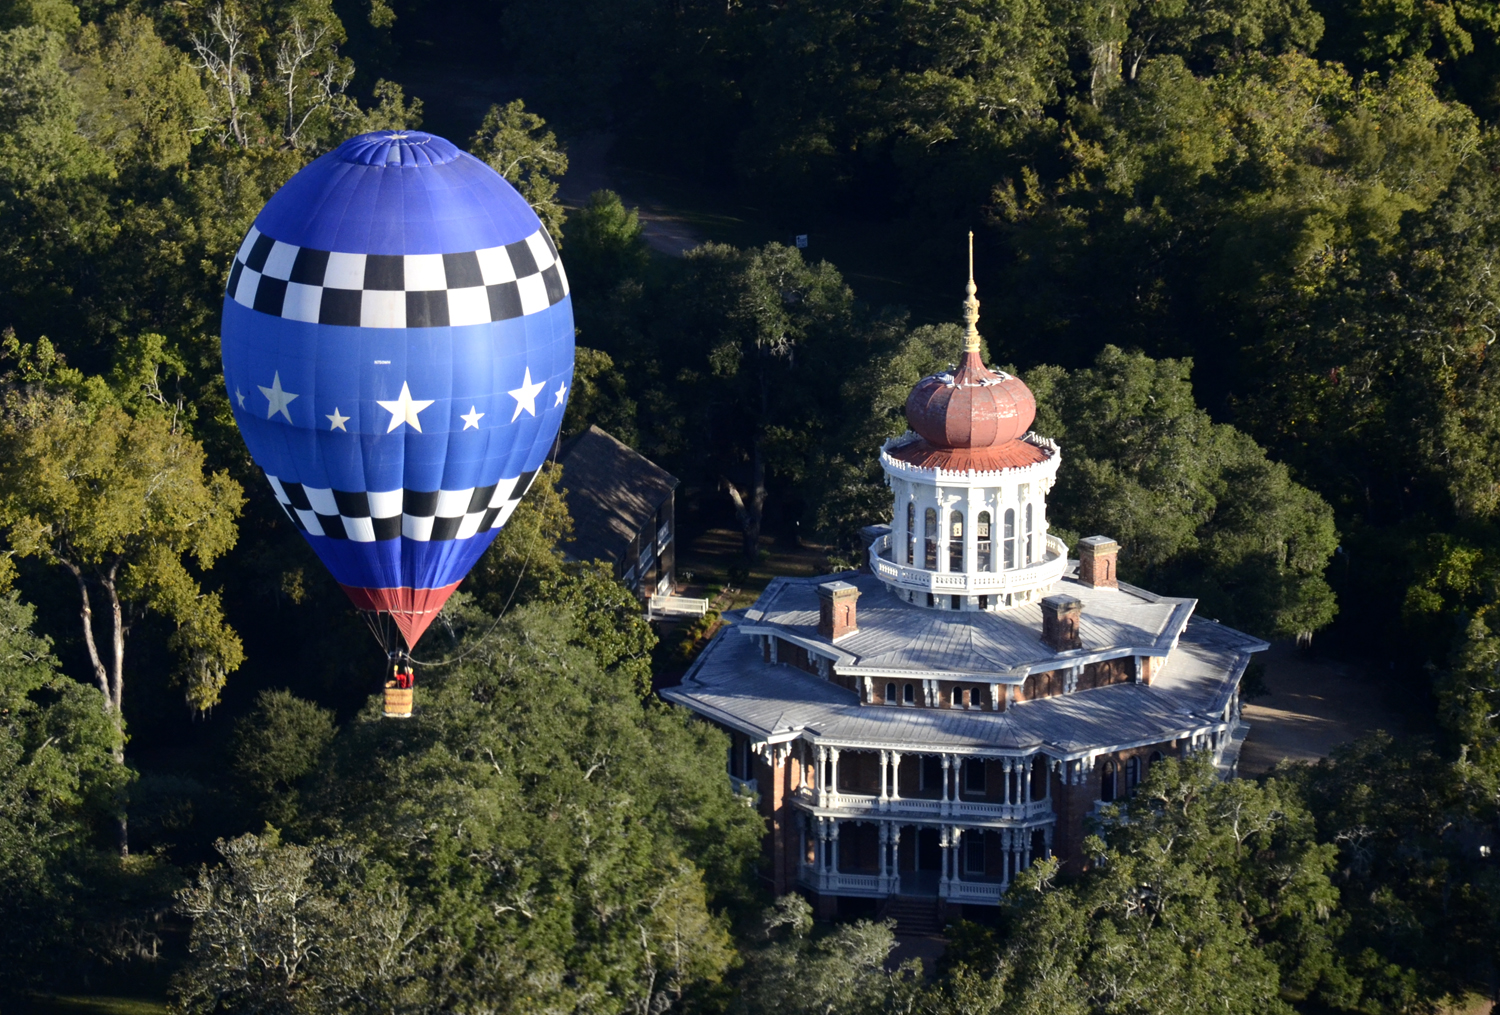 The Natchez Balloon Festival, also known as the Great Mississippi River Balloon Festival